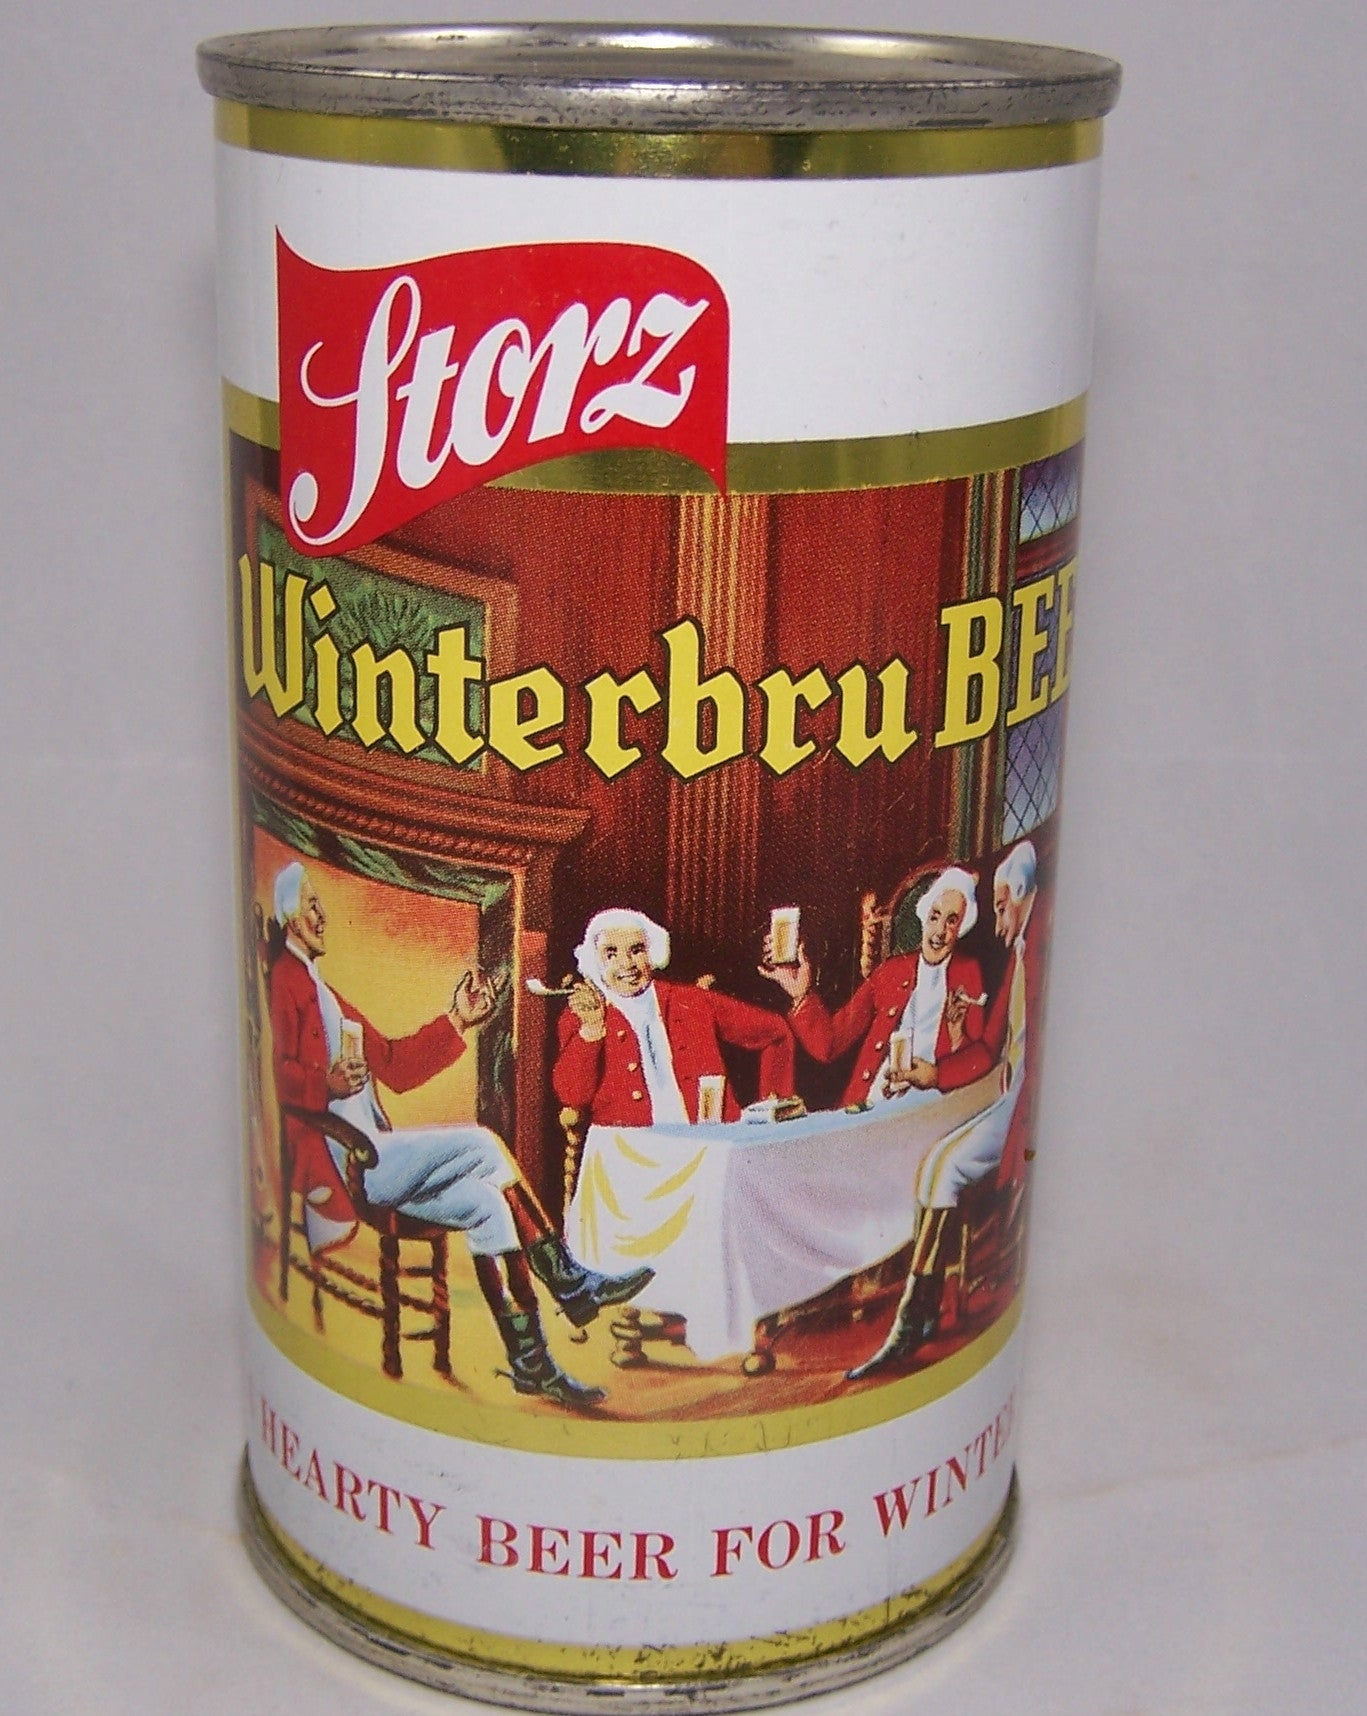 Storz Winterbru Beer USBC 137-14, Rolled Can, Grade 1/1+ Sold 9/2/15